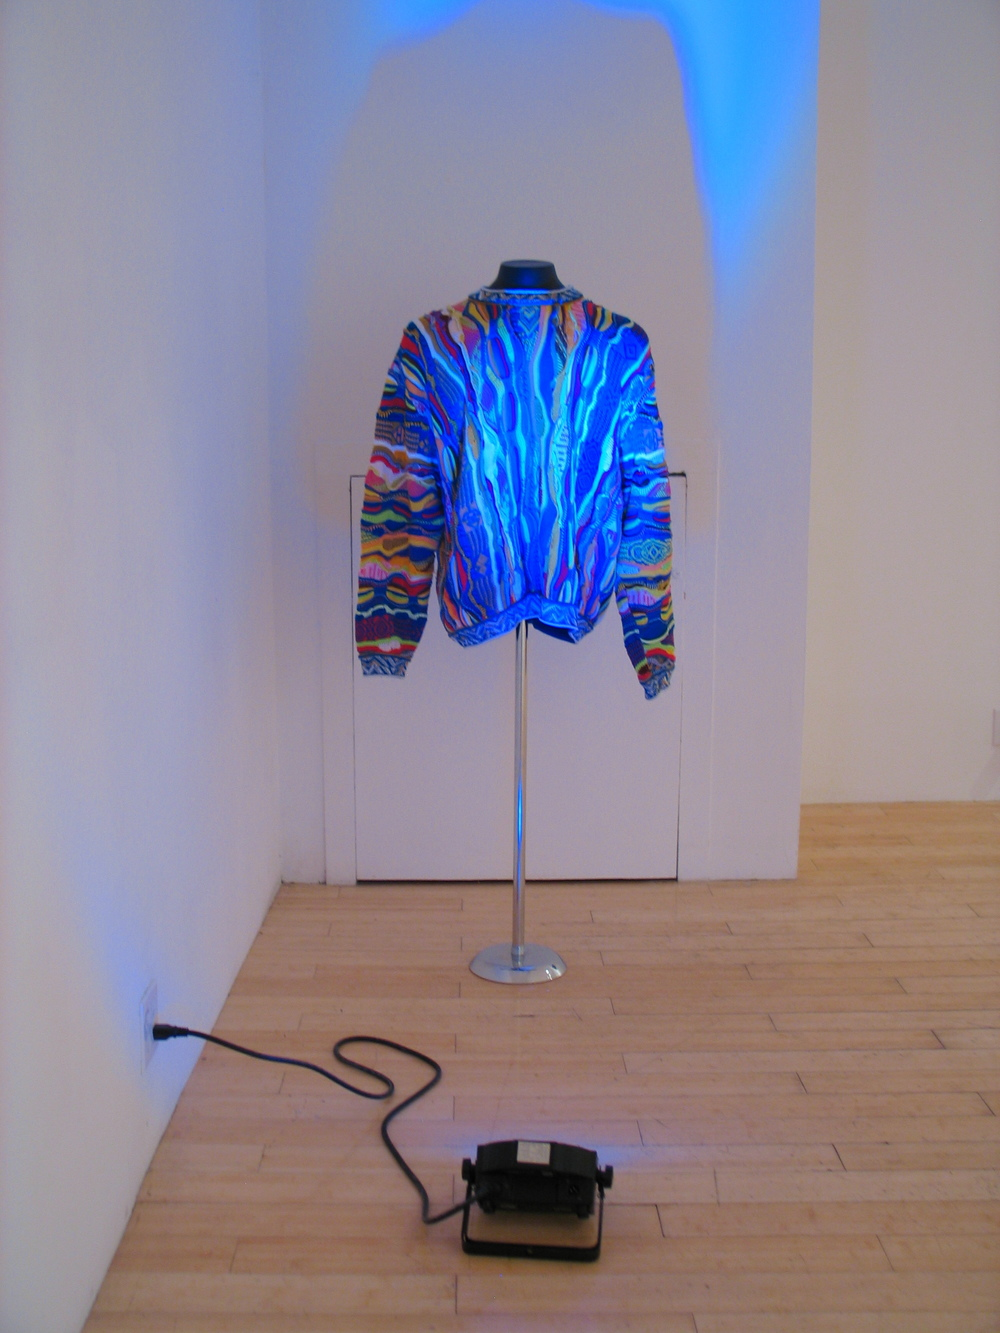 Constant Dullaart   Trui   2012  Coogi sweater, mannequin stand, RGB LED light  4 x 24 x 48 in/ 10.2 x 10.2 x 121.9 cm  Edition 1 of 3 with 2 AP